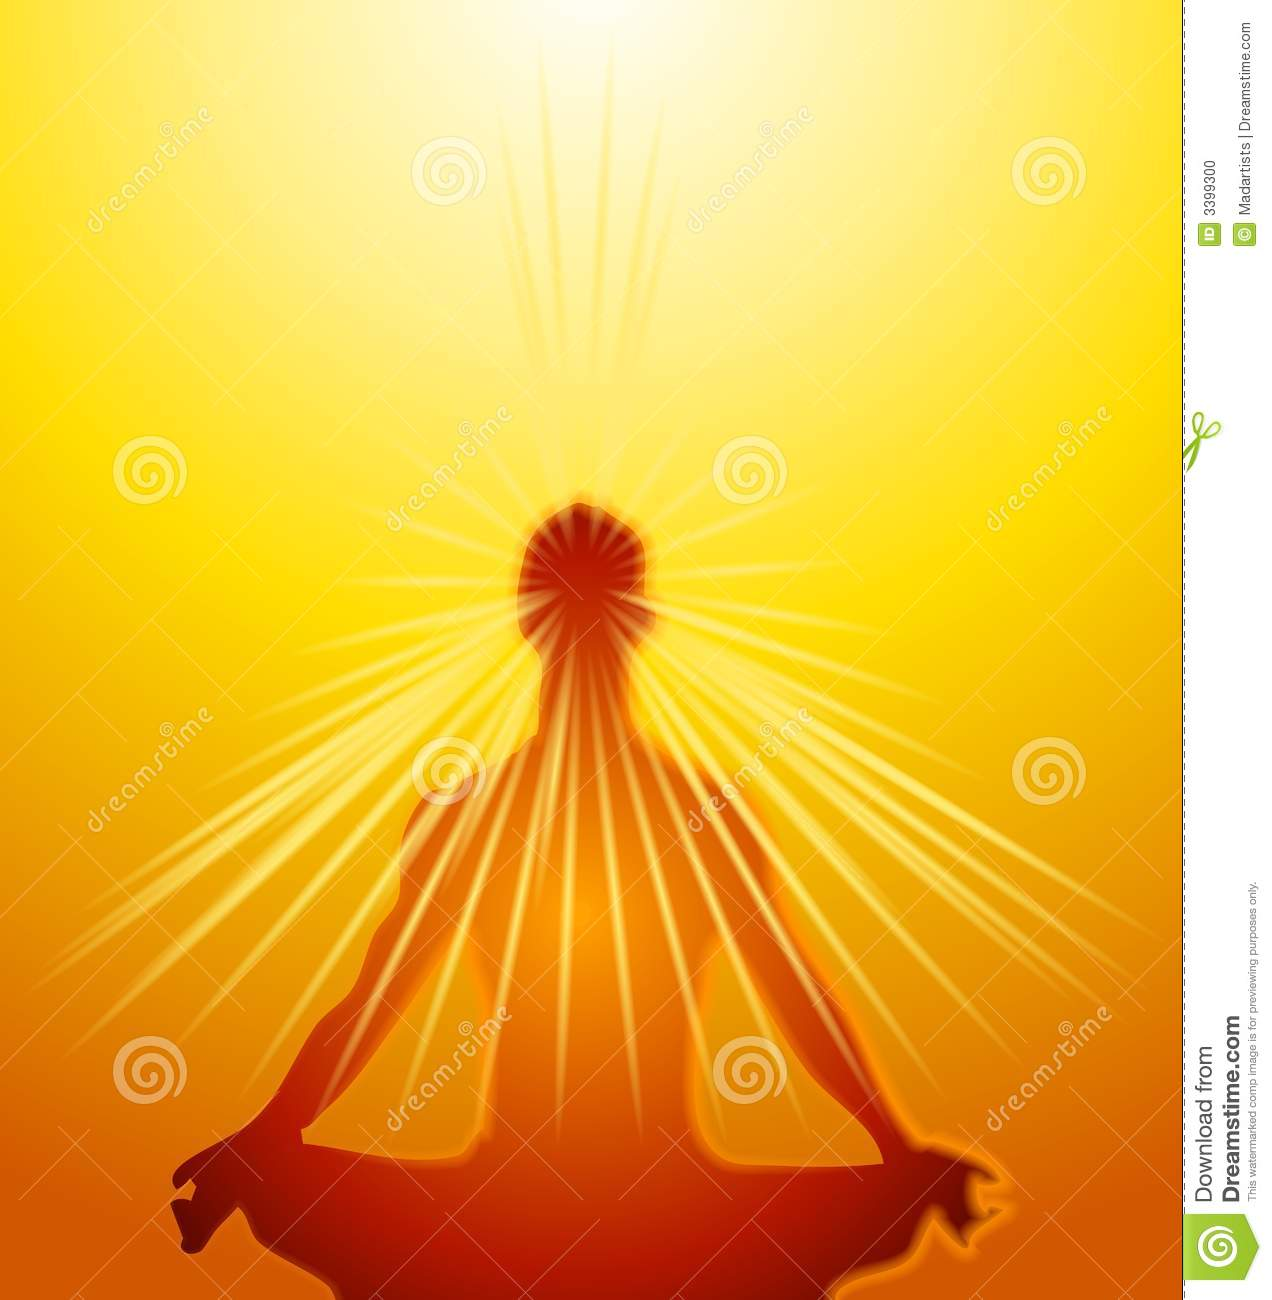 Psychic Mind Powers Meditation Stock Photo  Image: 3399300